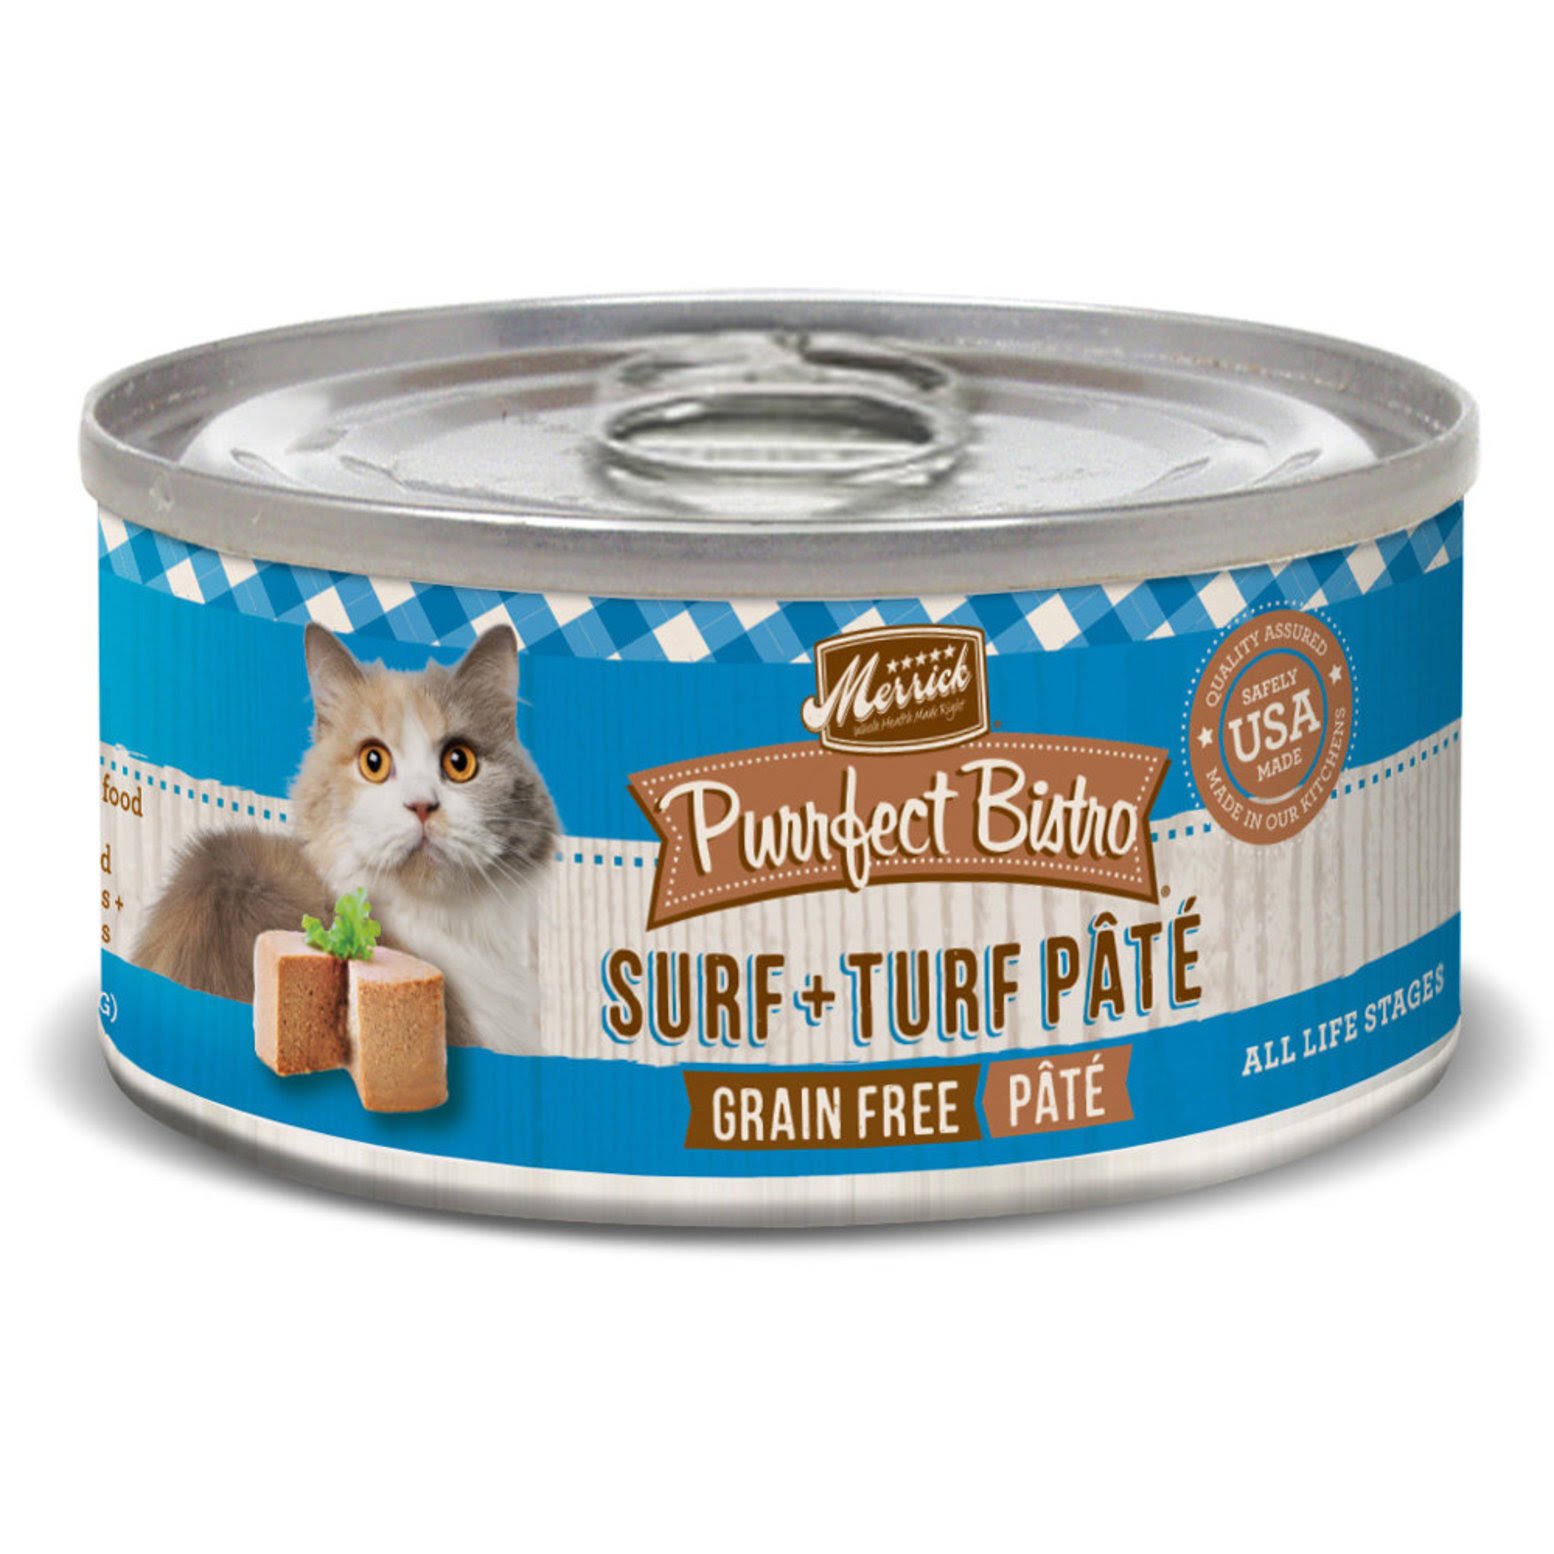 Merrick Purrfect Bistro Grain Free Surf & Turf Pate Canned Cat Food